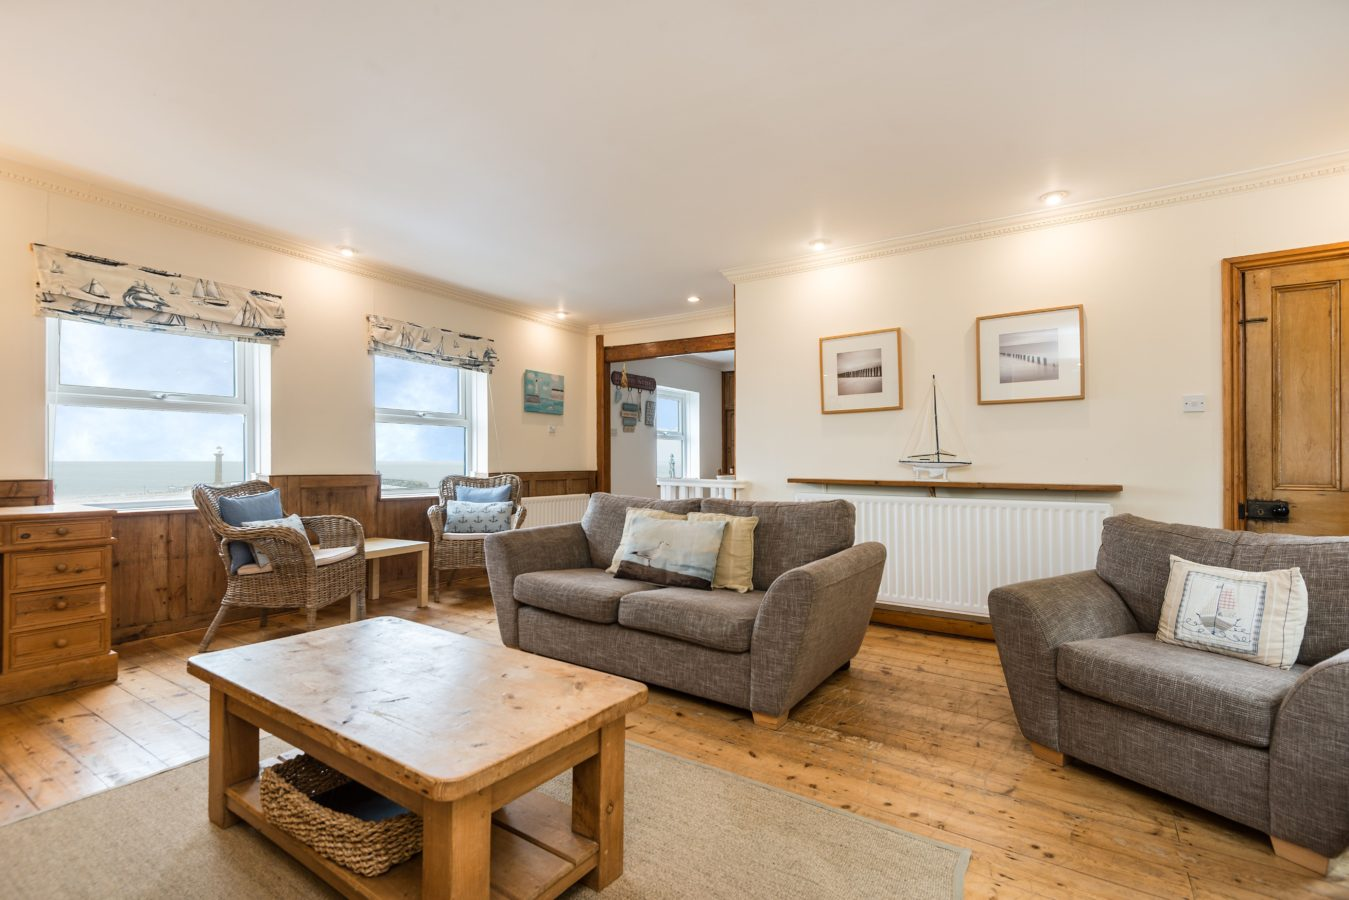 Whitby family accommodation, Holiday cottage with parking Whitby, Cottage with sea views Whitby.